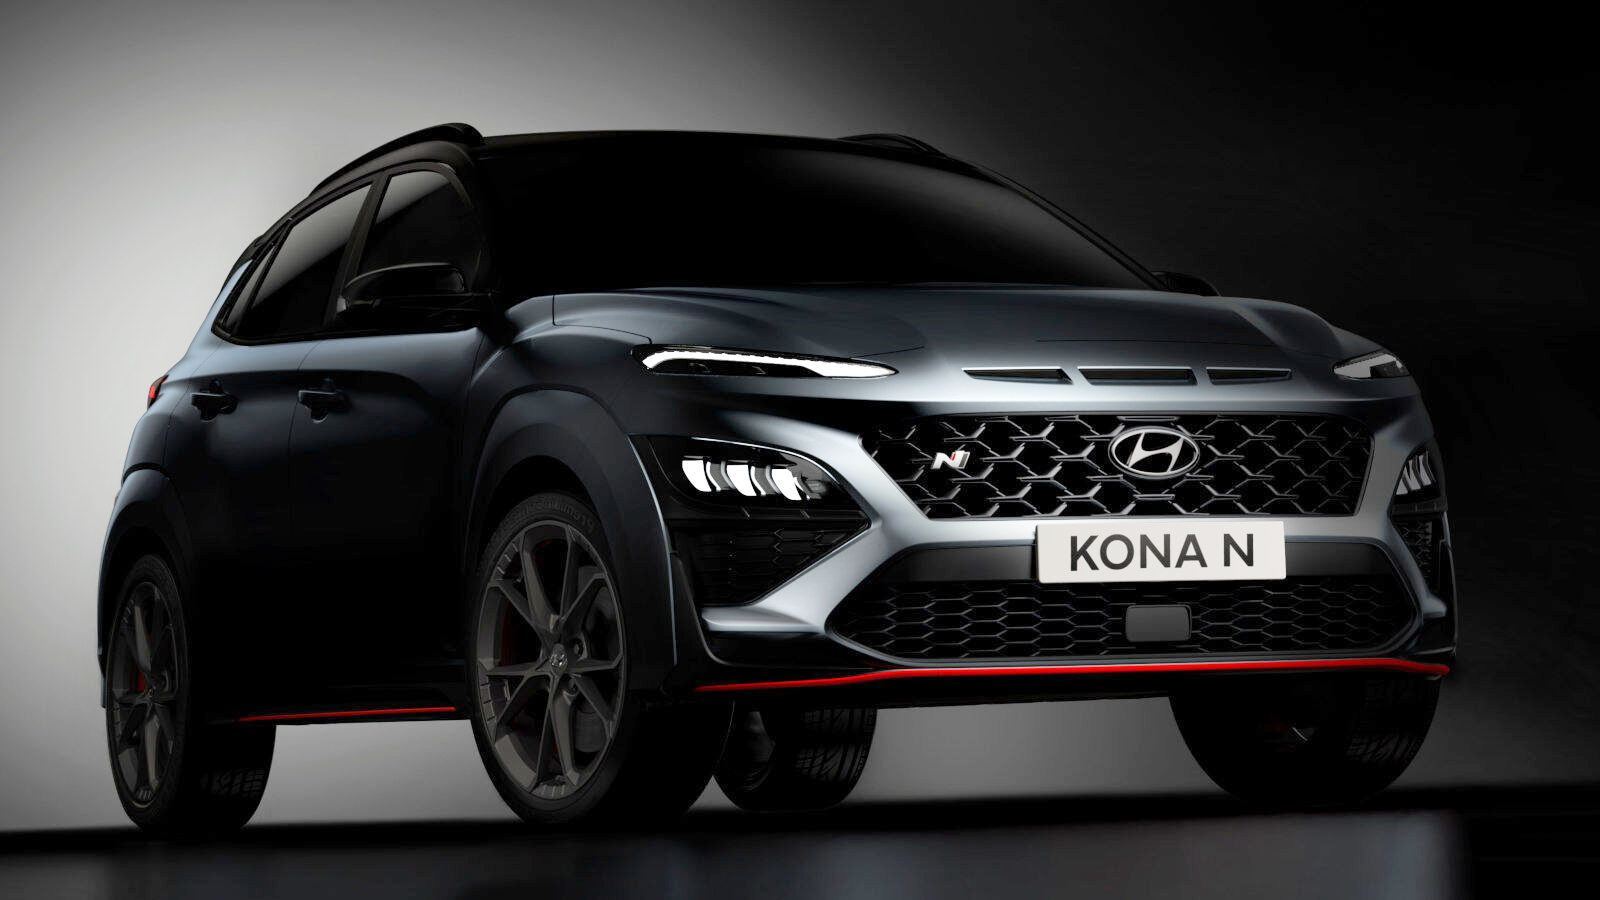 Hyundai Kona N to get 280 hp, 2.0-litre turbo-petrol with eight-speed DCT automatic- Technology News, Gadgetclock